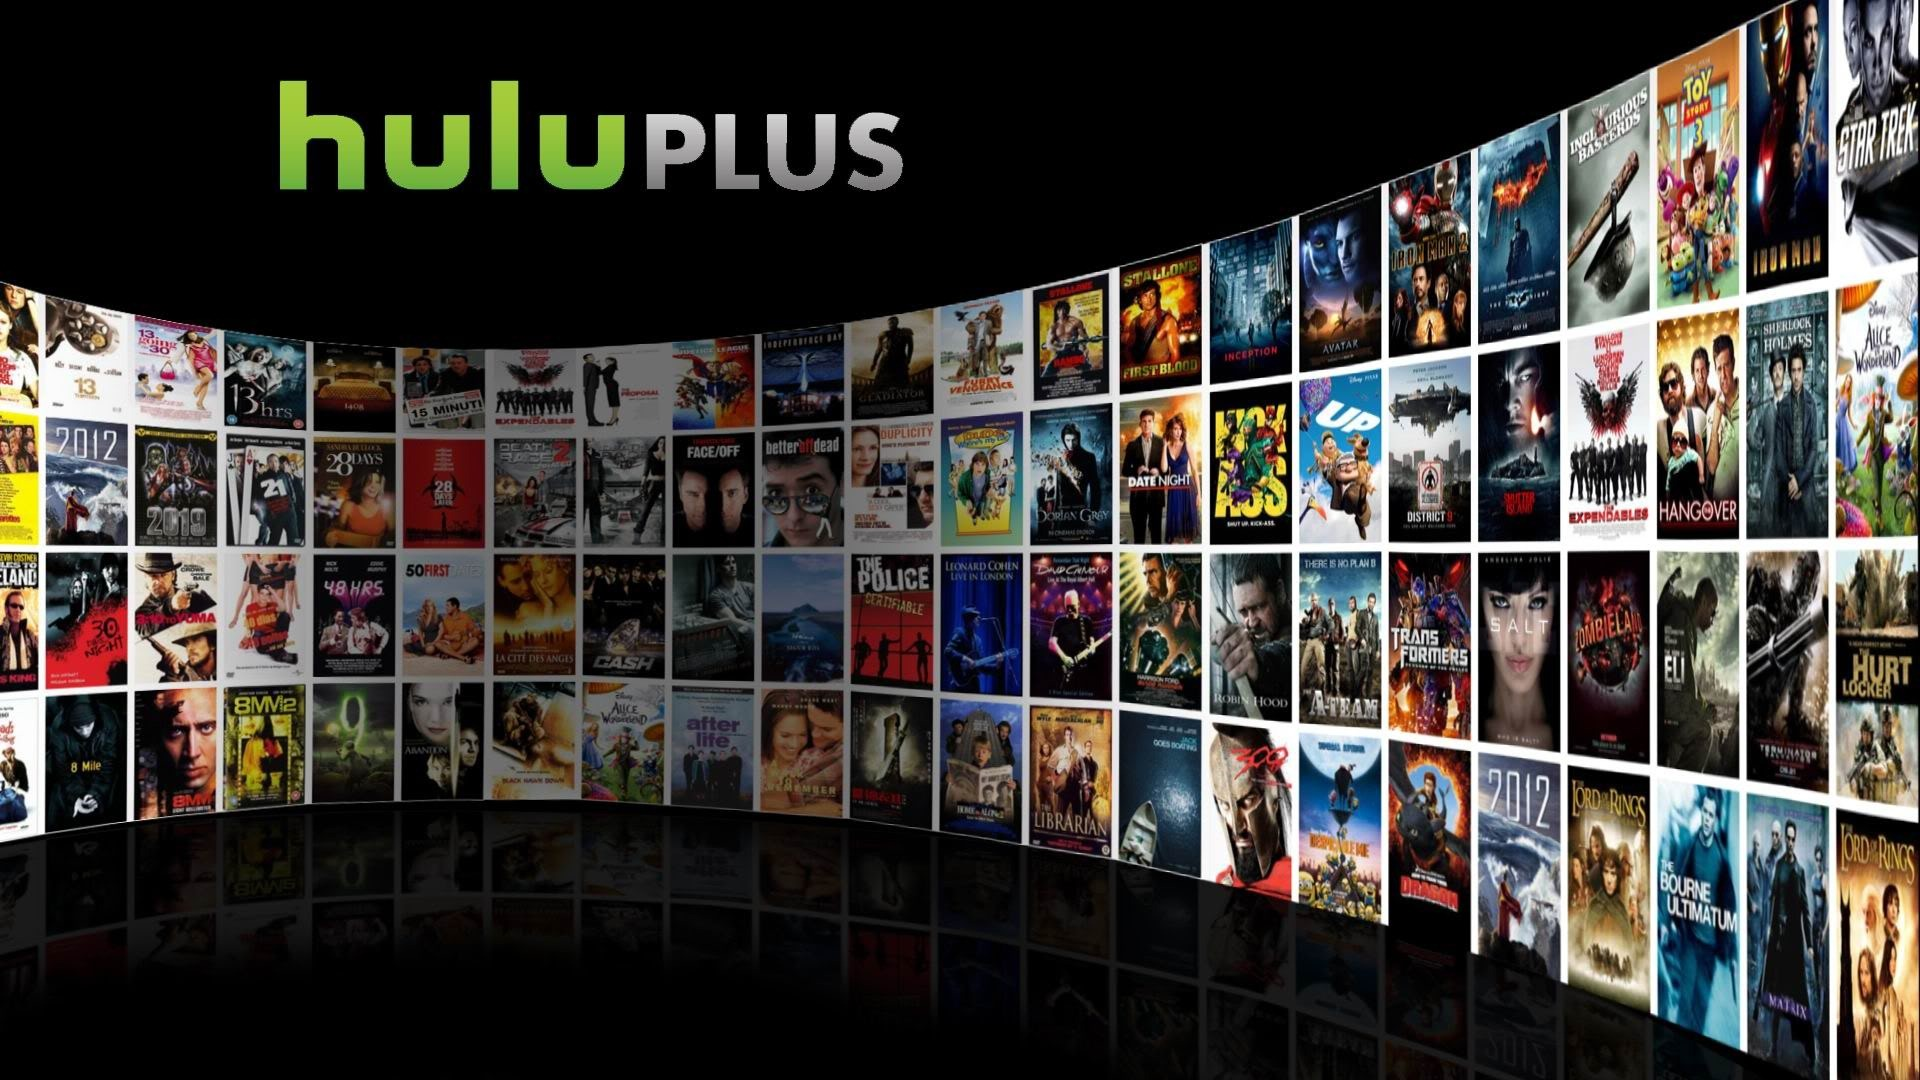 Hulu Plus App For Android Hacked To Work On More Devices